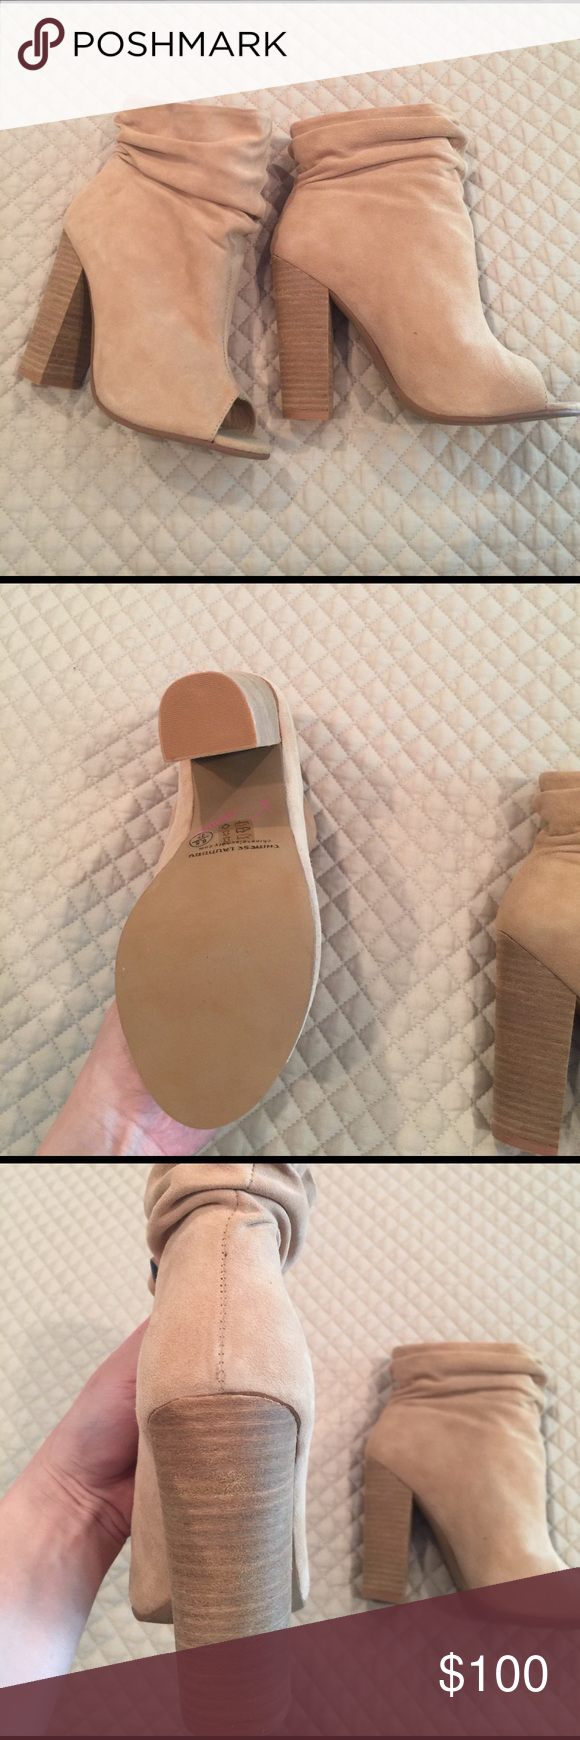 Booties - NEW Kristin cavalleri Nude suede booties Chinese Laundry Shoes Heeled Boots